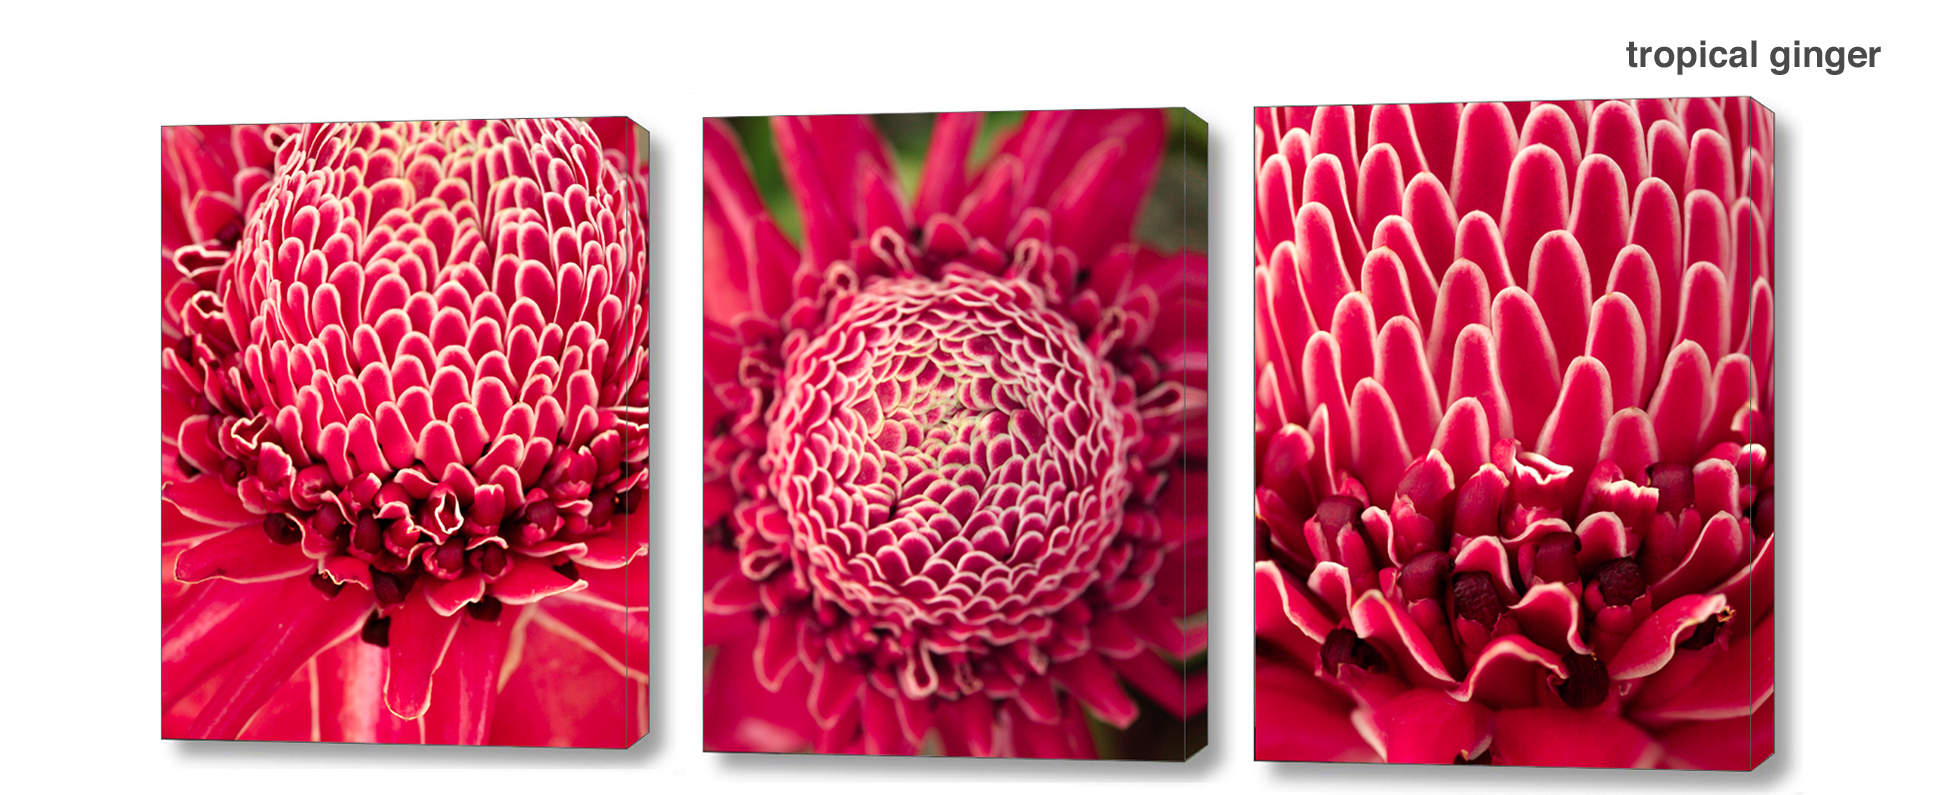 ginger series - Floral Series Wall Decor Macro Photography Matted & Giclée Canvas Prints